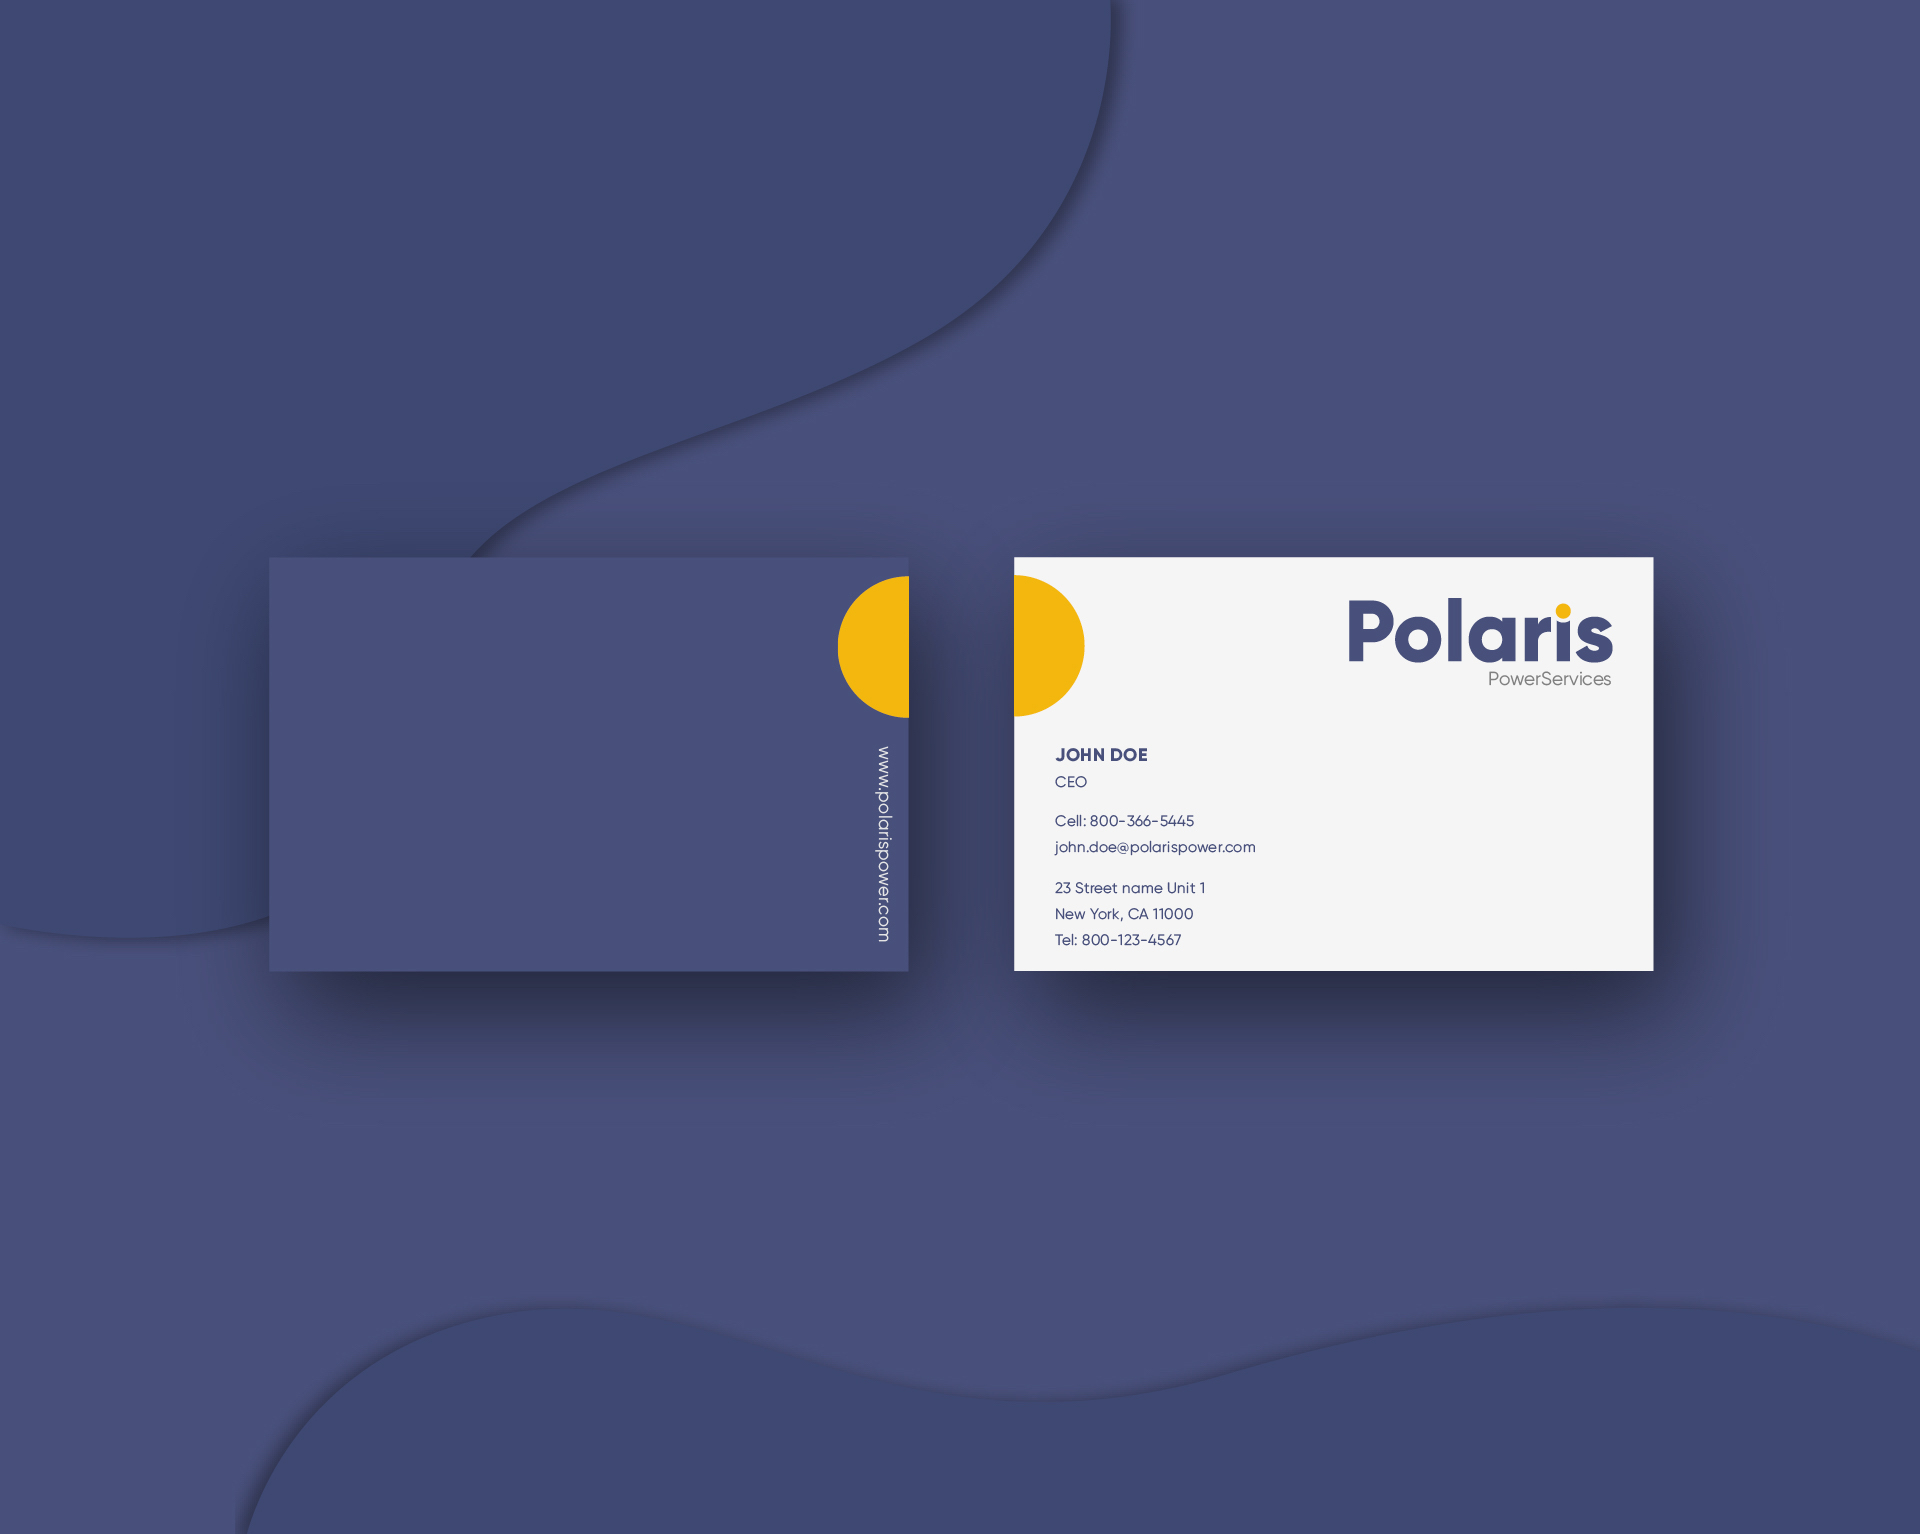 Polaris business card